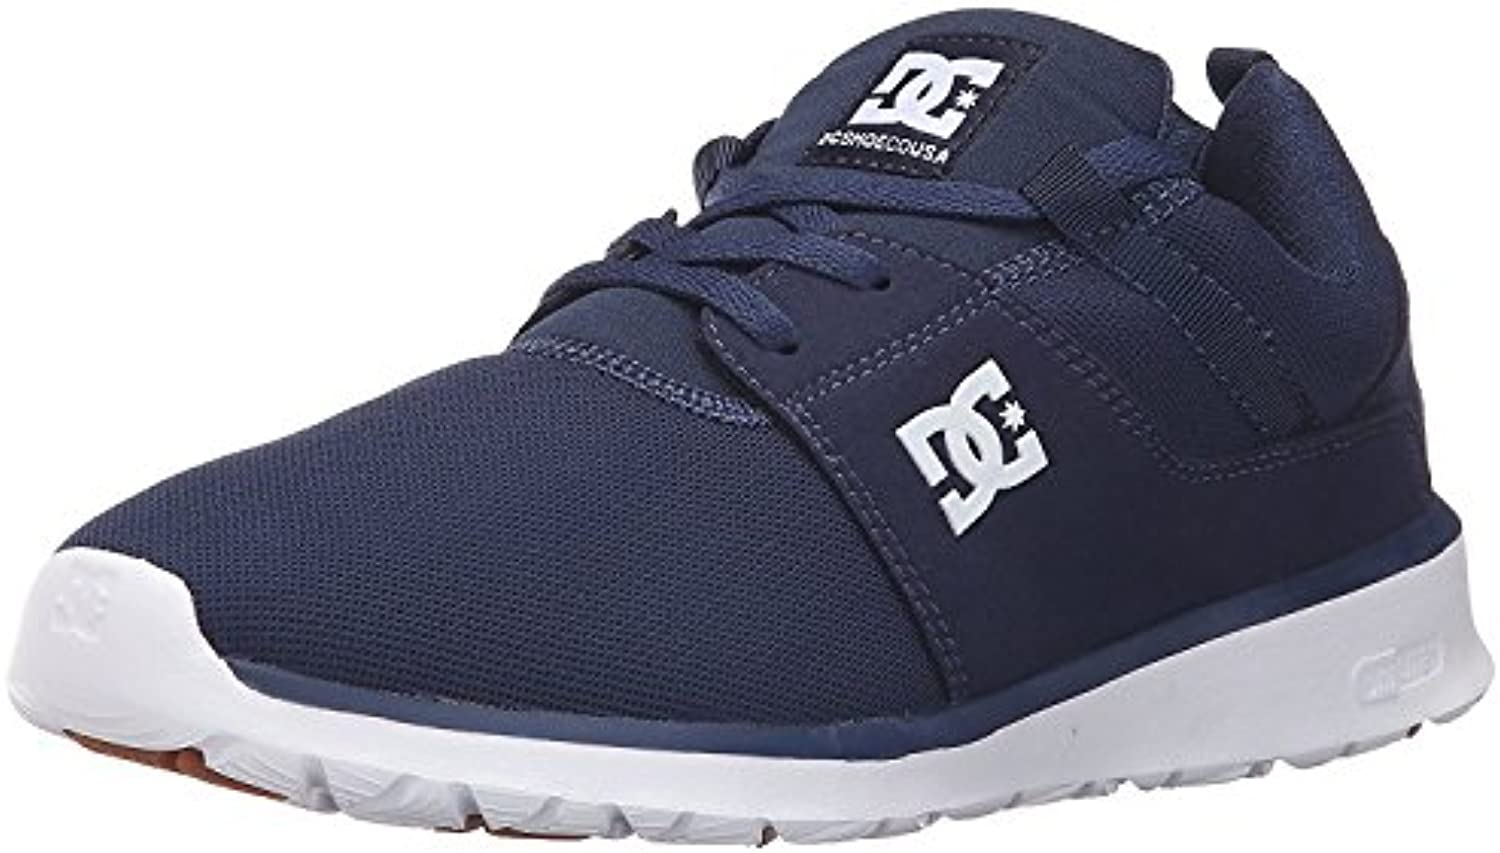 DC Men's Heathrow Casual Skate Shoe, Marino, 42.5 unknown EU/8.5 unknown UK